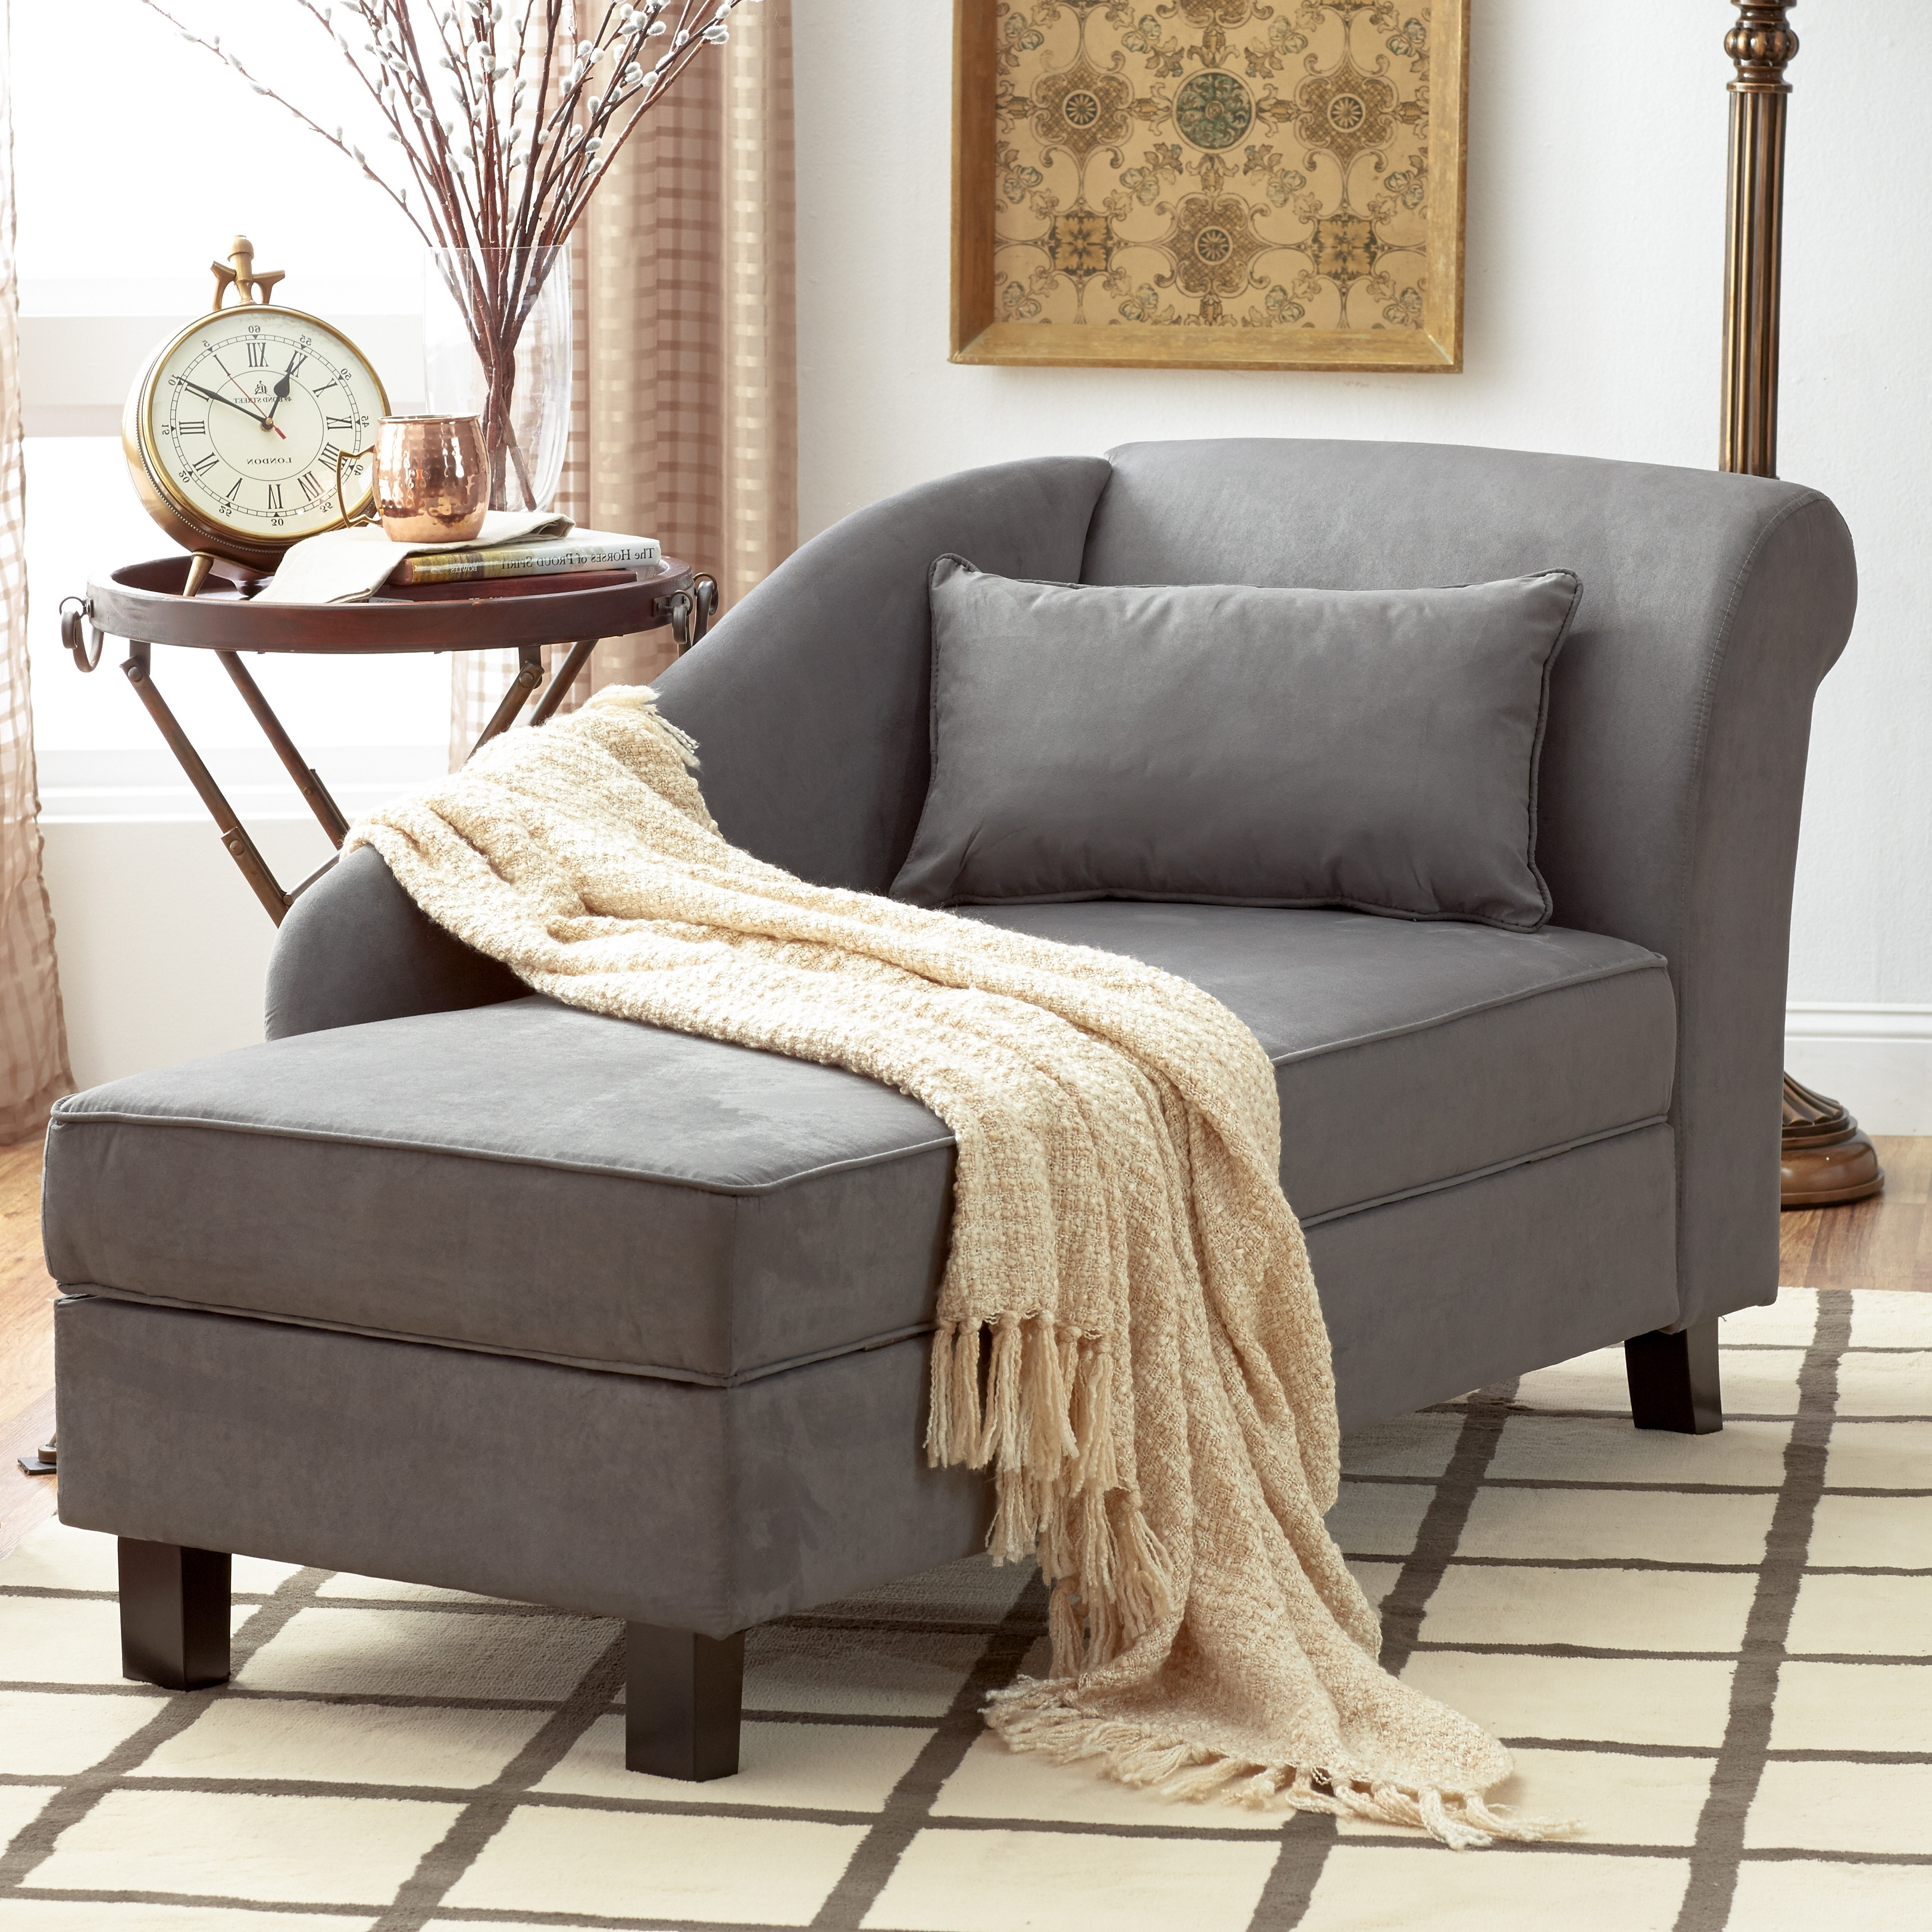 Gray Chaise Lounge Chairs For Preferred Sofa: Great Chaise Lounge Chairs Best Outdoor Chaise Lounges (View 3 of 15)